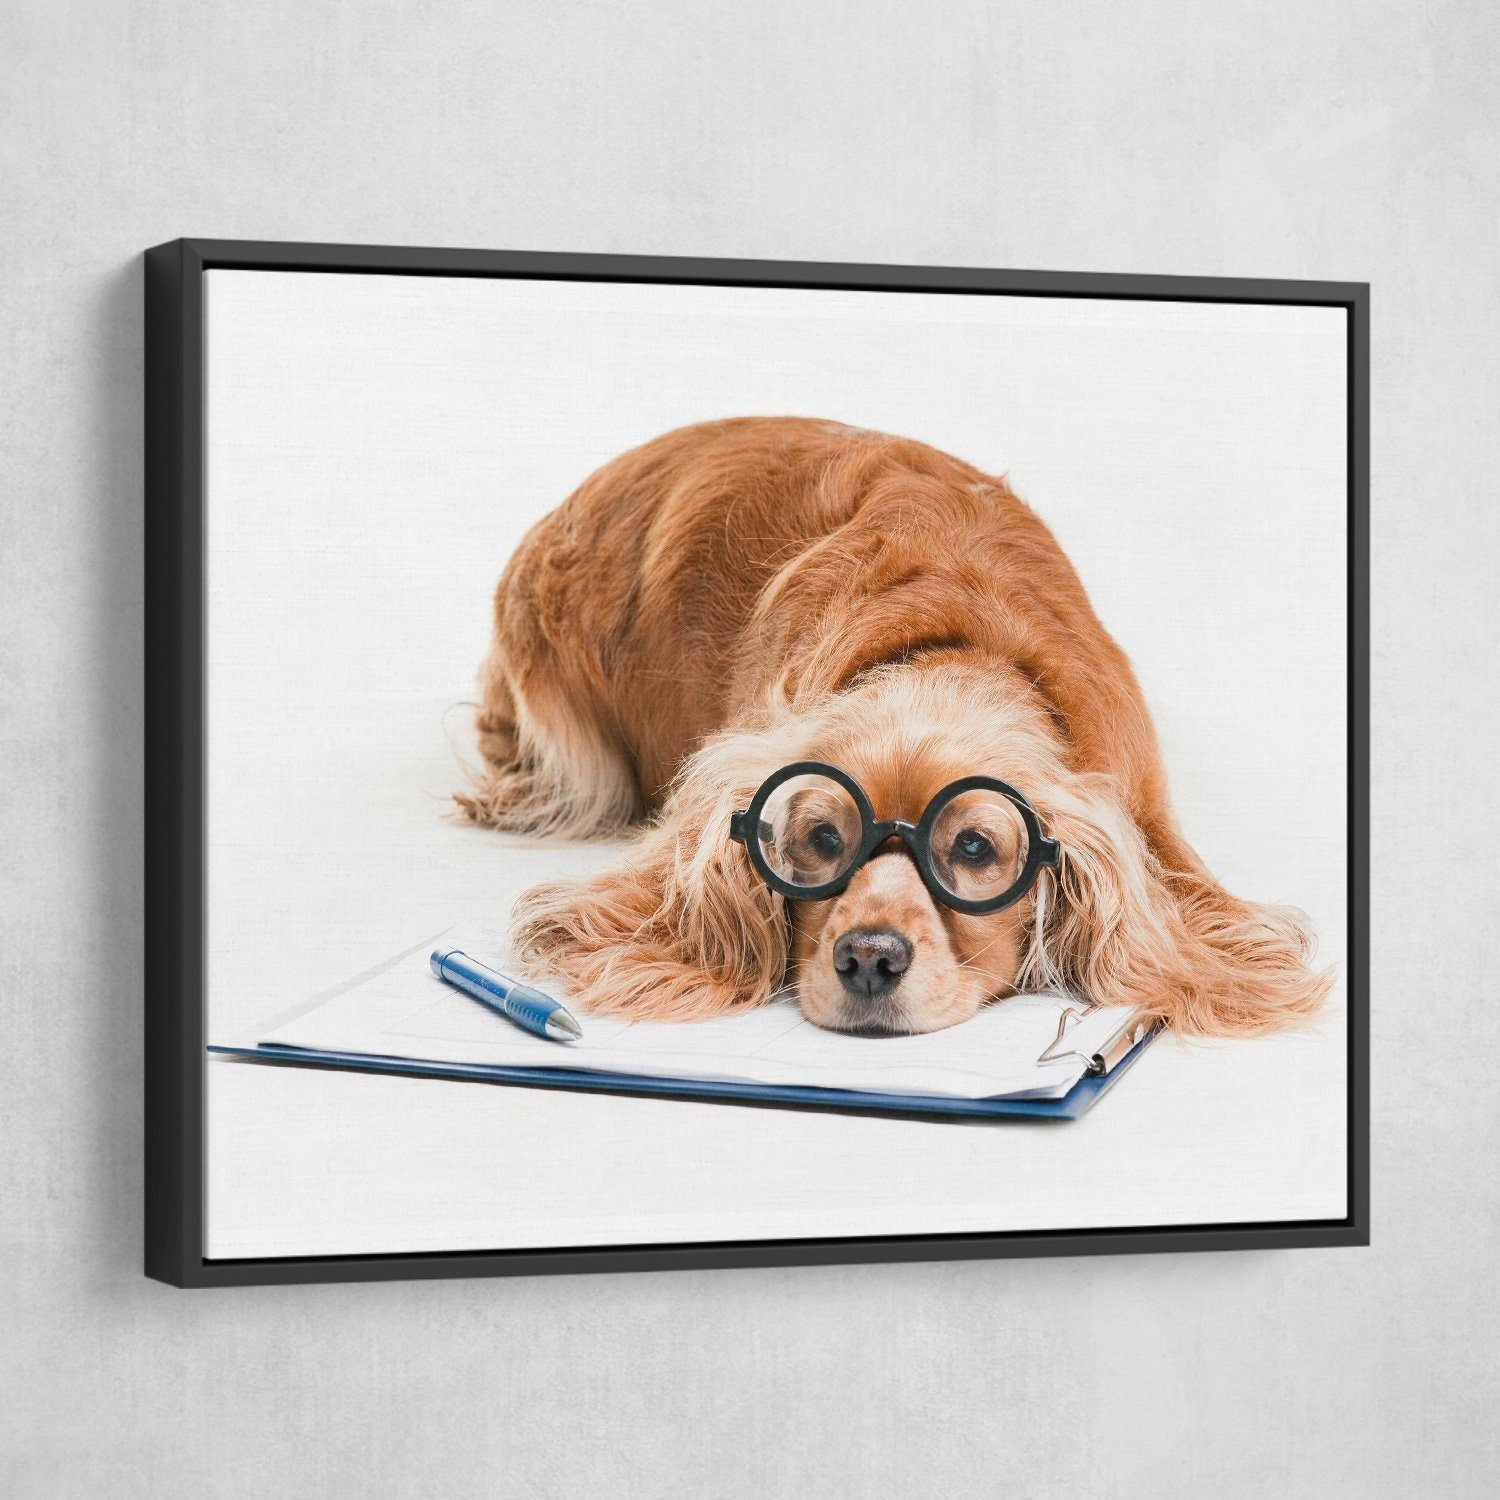 Cocker Spaniel wall art black frame